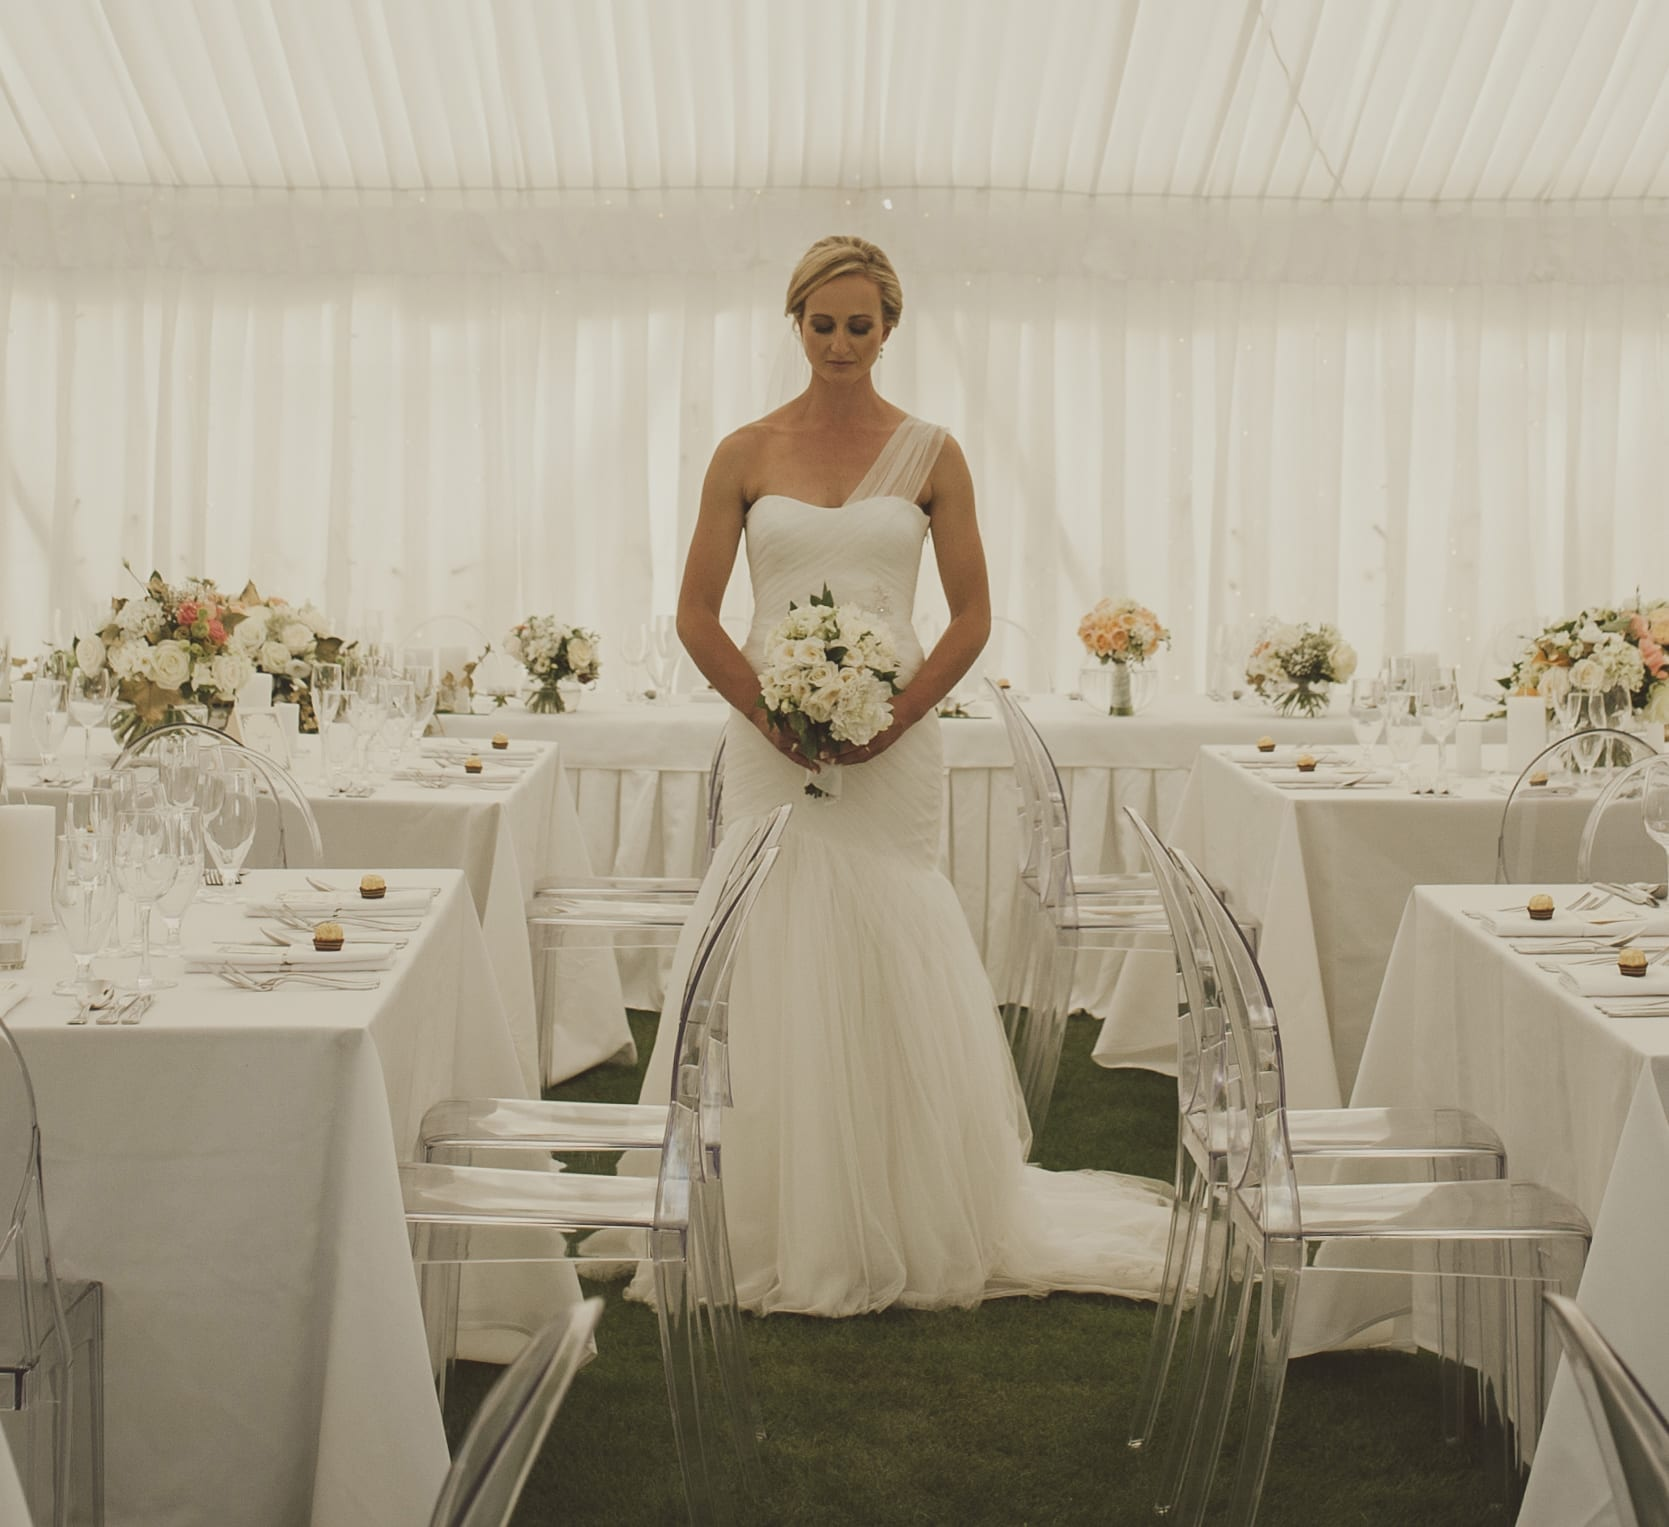 kim chan events | our bride enjoying her bouquet and flowers in the marquee